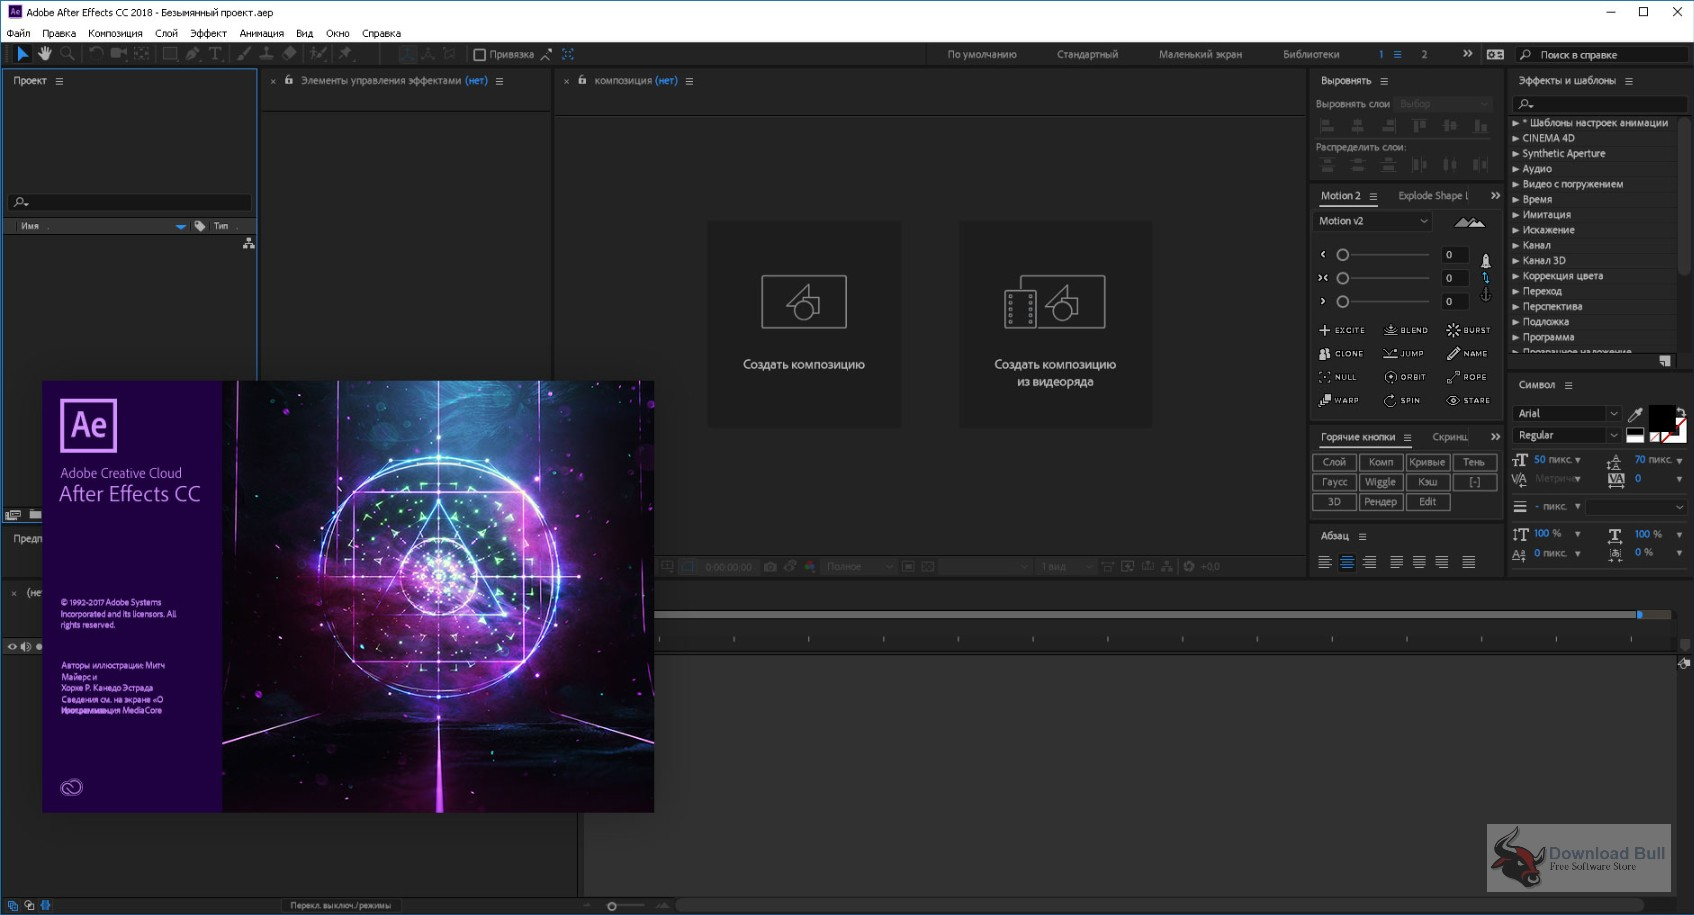 adobe after effects cc 2018 full version free download